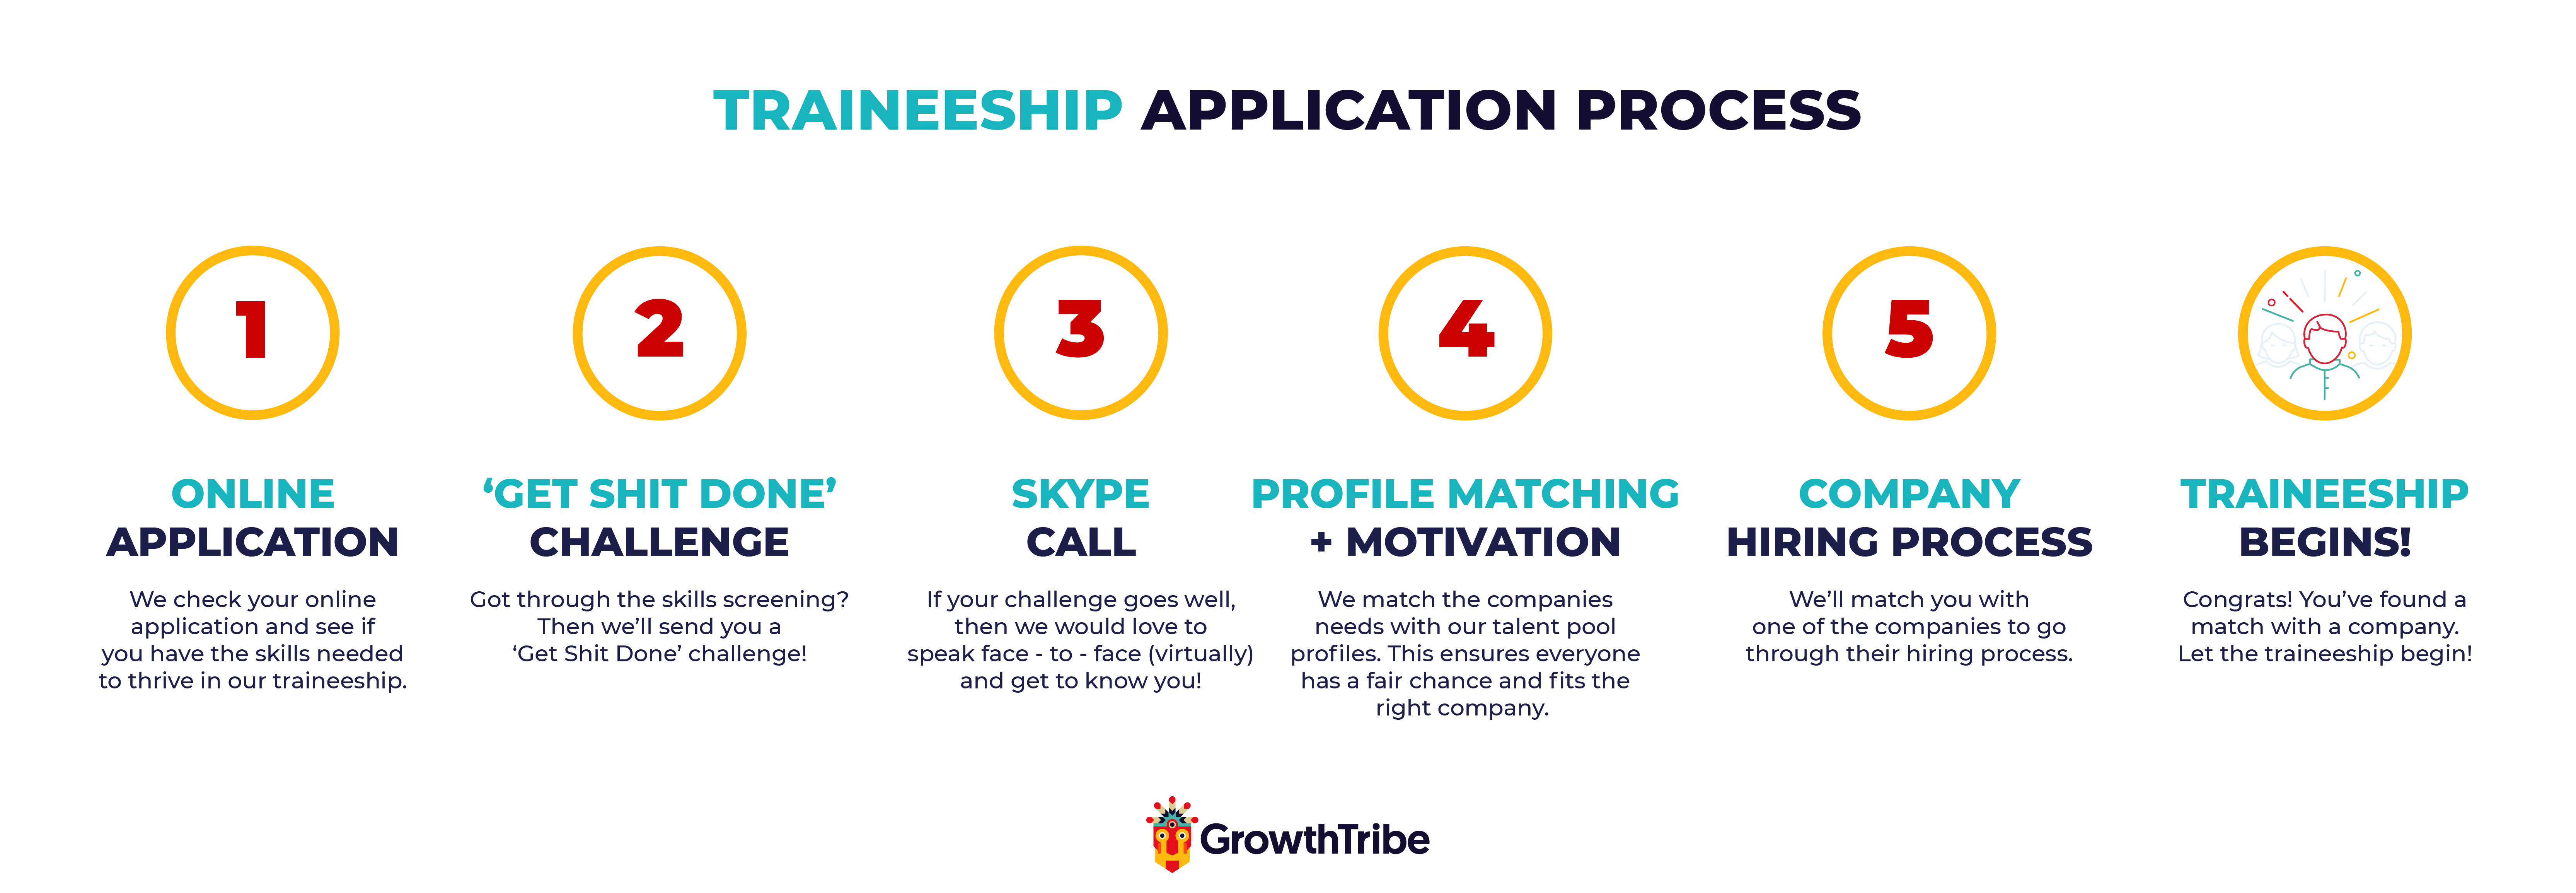 Traineeship application process overview